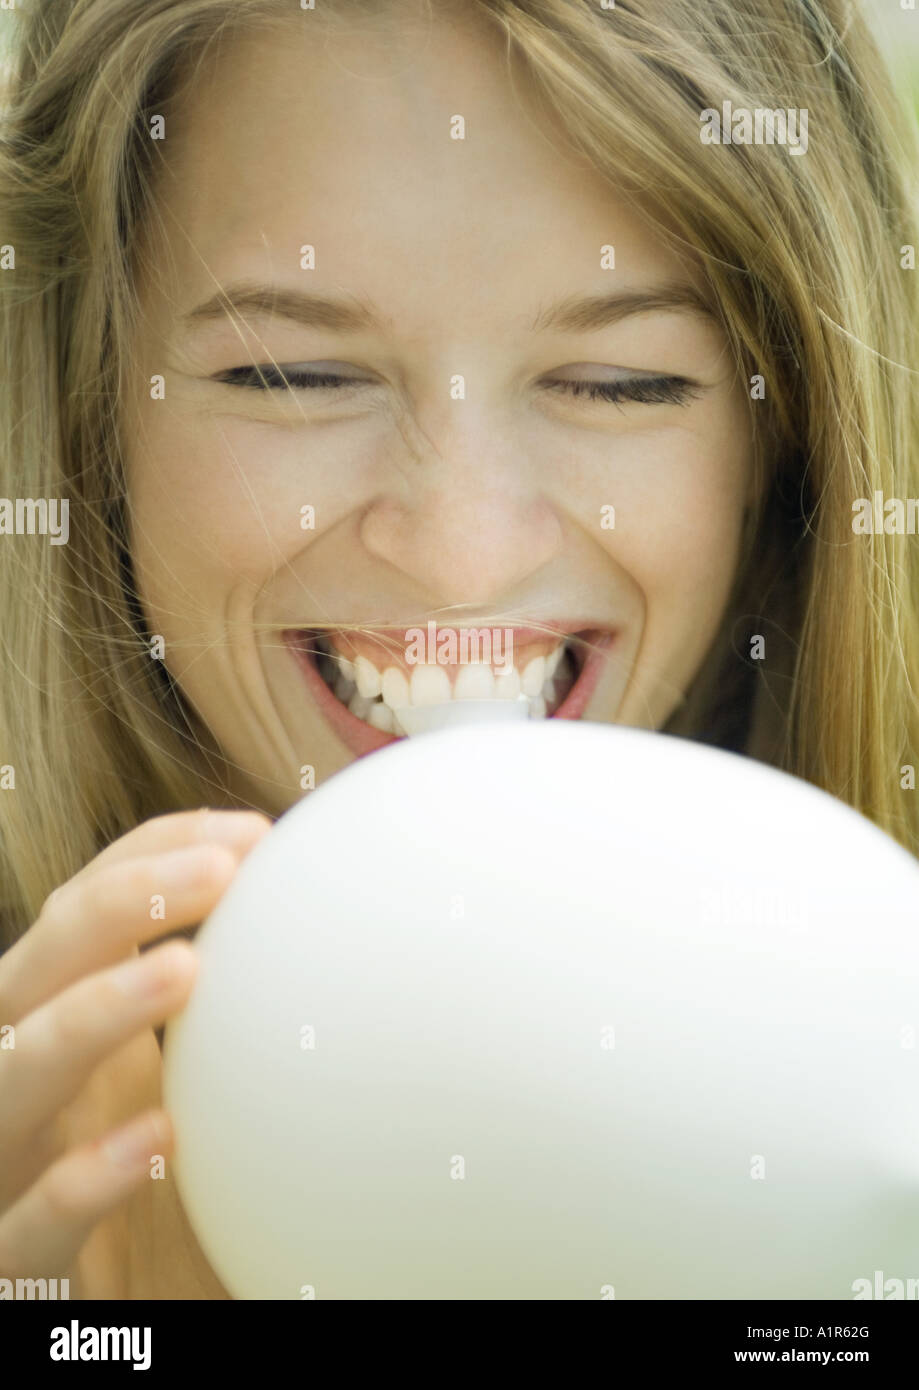 Young woman blowing up balloon, laughing, close-up - Stock Image